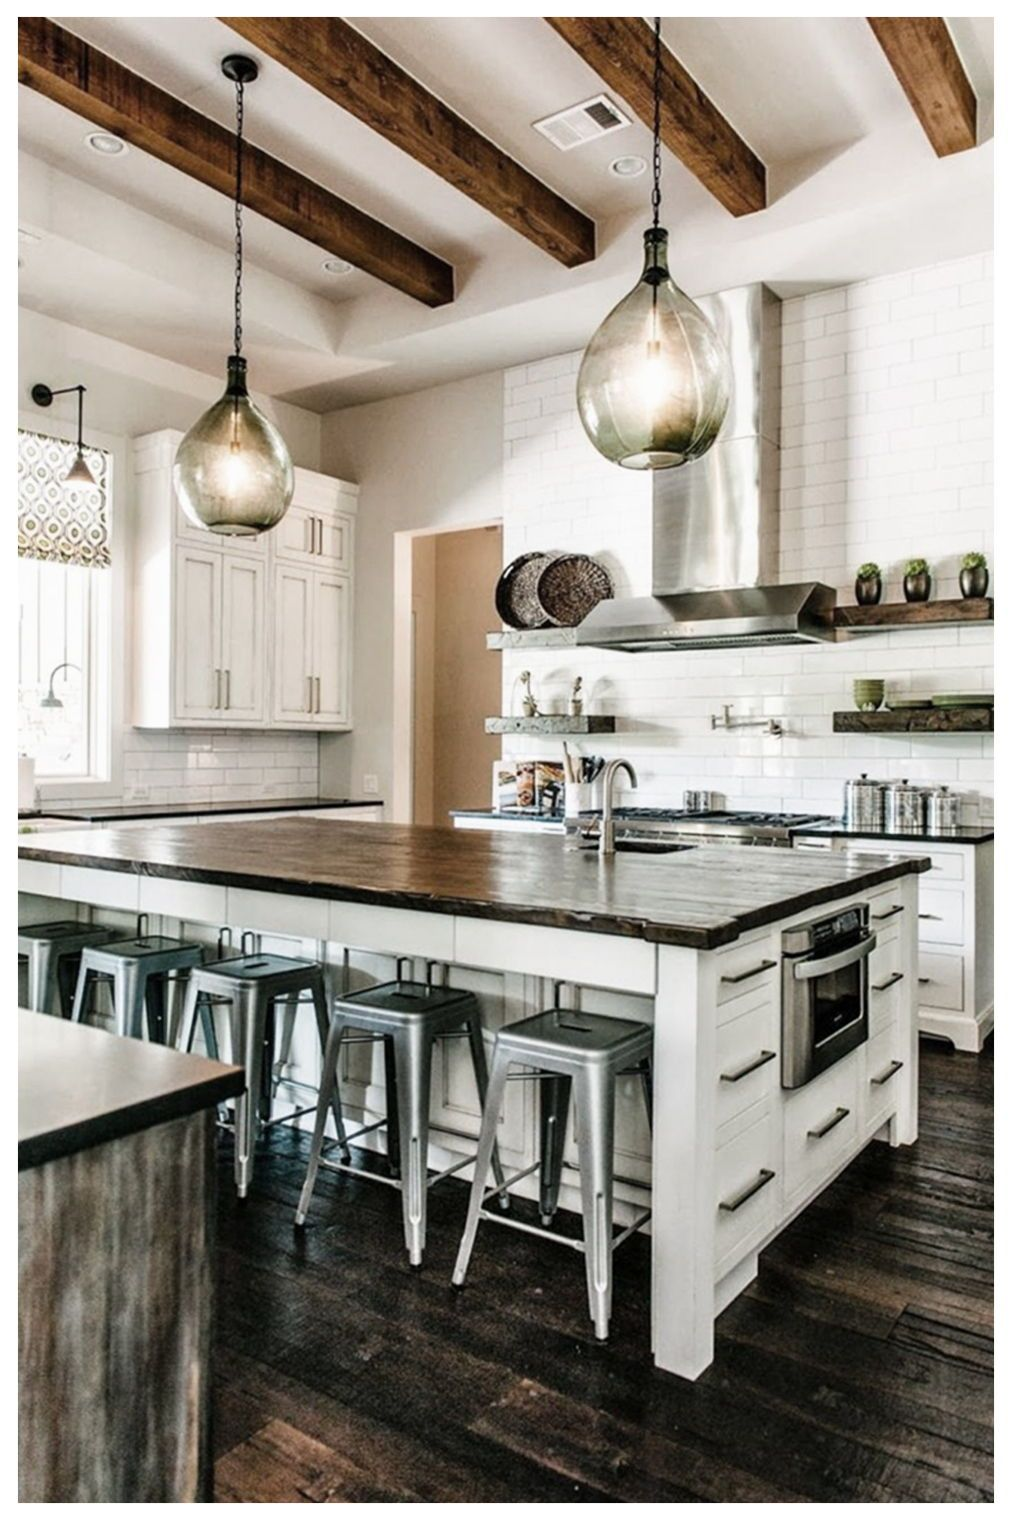 20 Industrial Style Kitchen 2020 Trends Key Elements Design Ideas Interior Design Kitchen Industrial Style Kitchen Transitional Kitchen Design